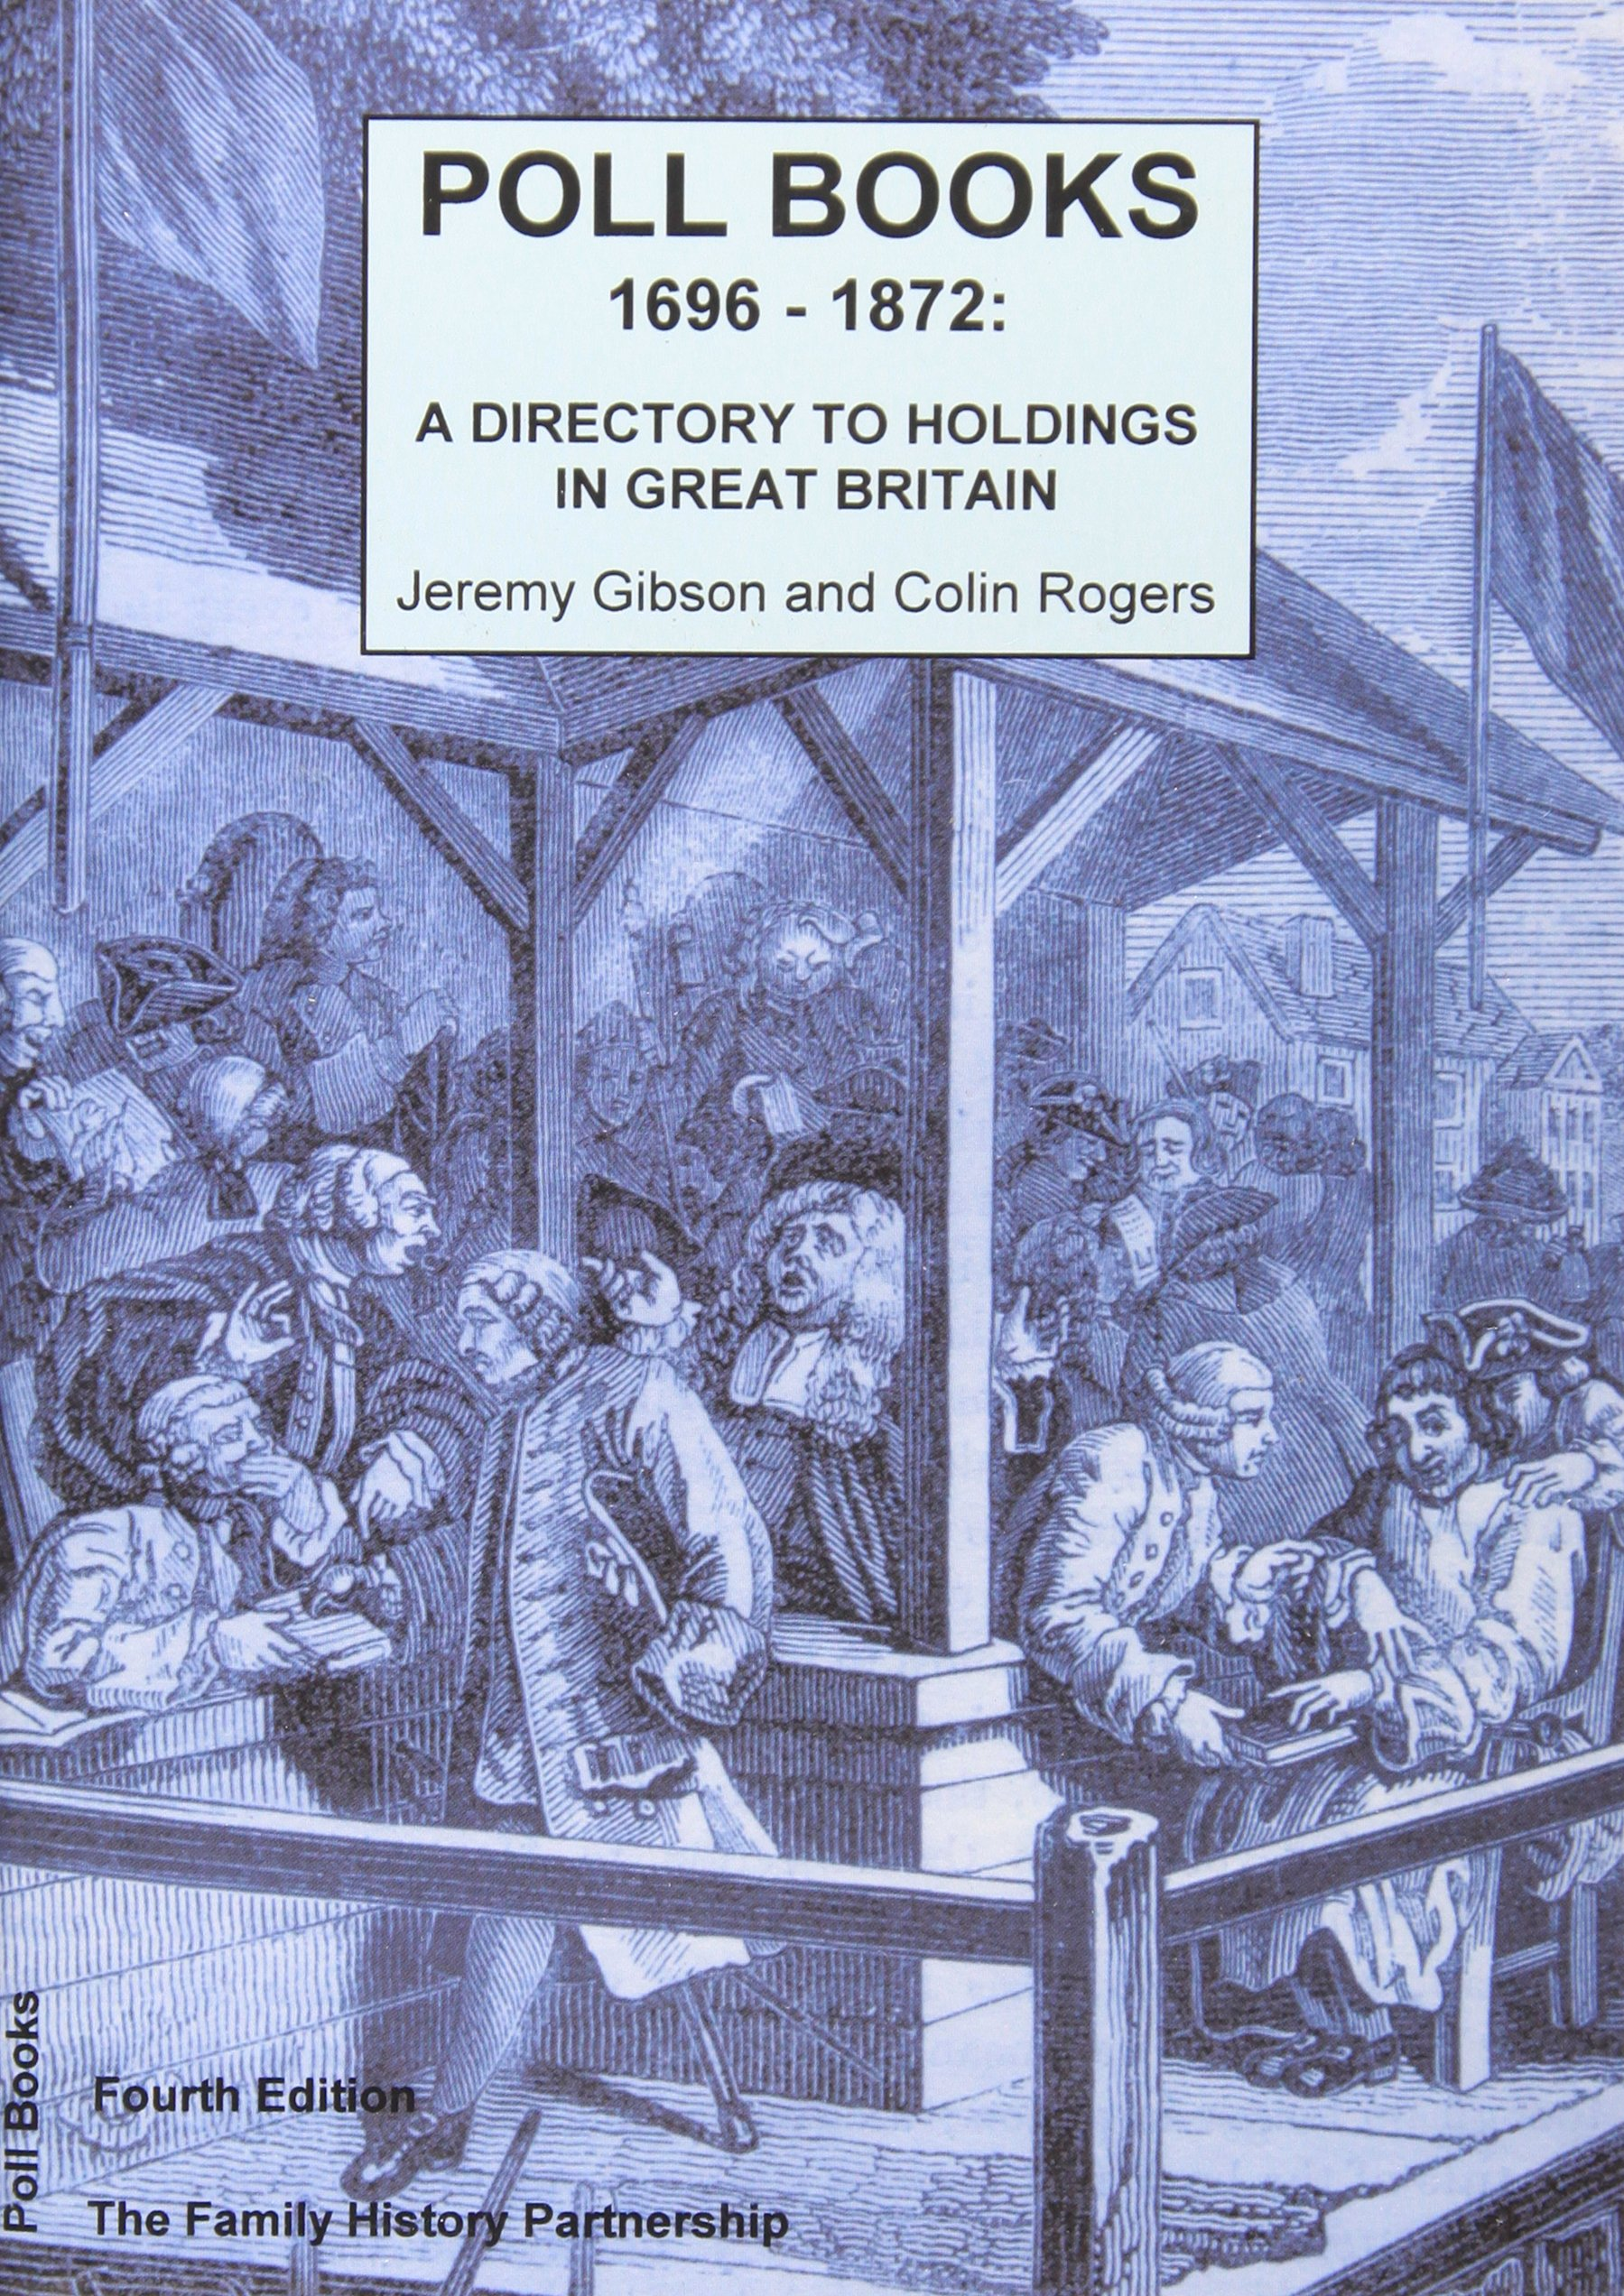 Poll Books 1696-1872: A Directory to Holdings in Great Britain Paperback – 2 May 2008 Jeremy Gibson Colin Rogers 1906280096 Local History